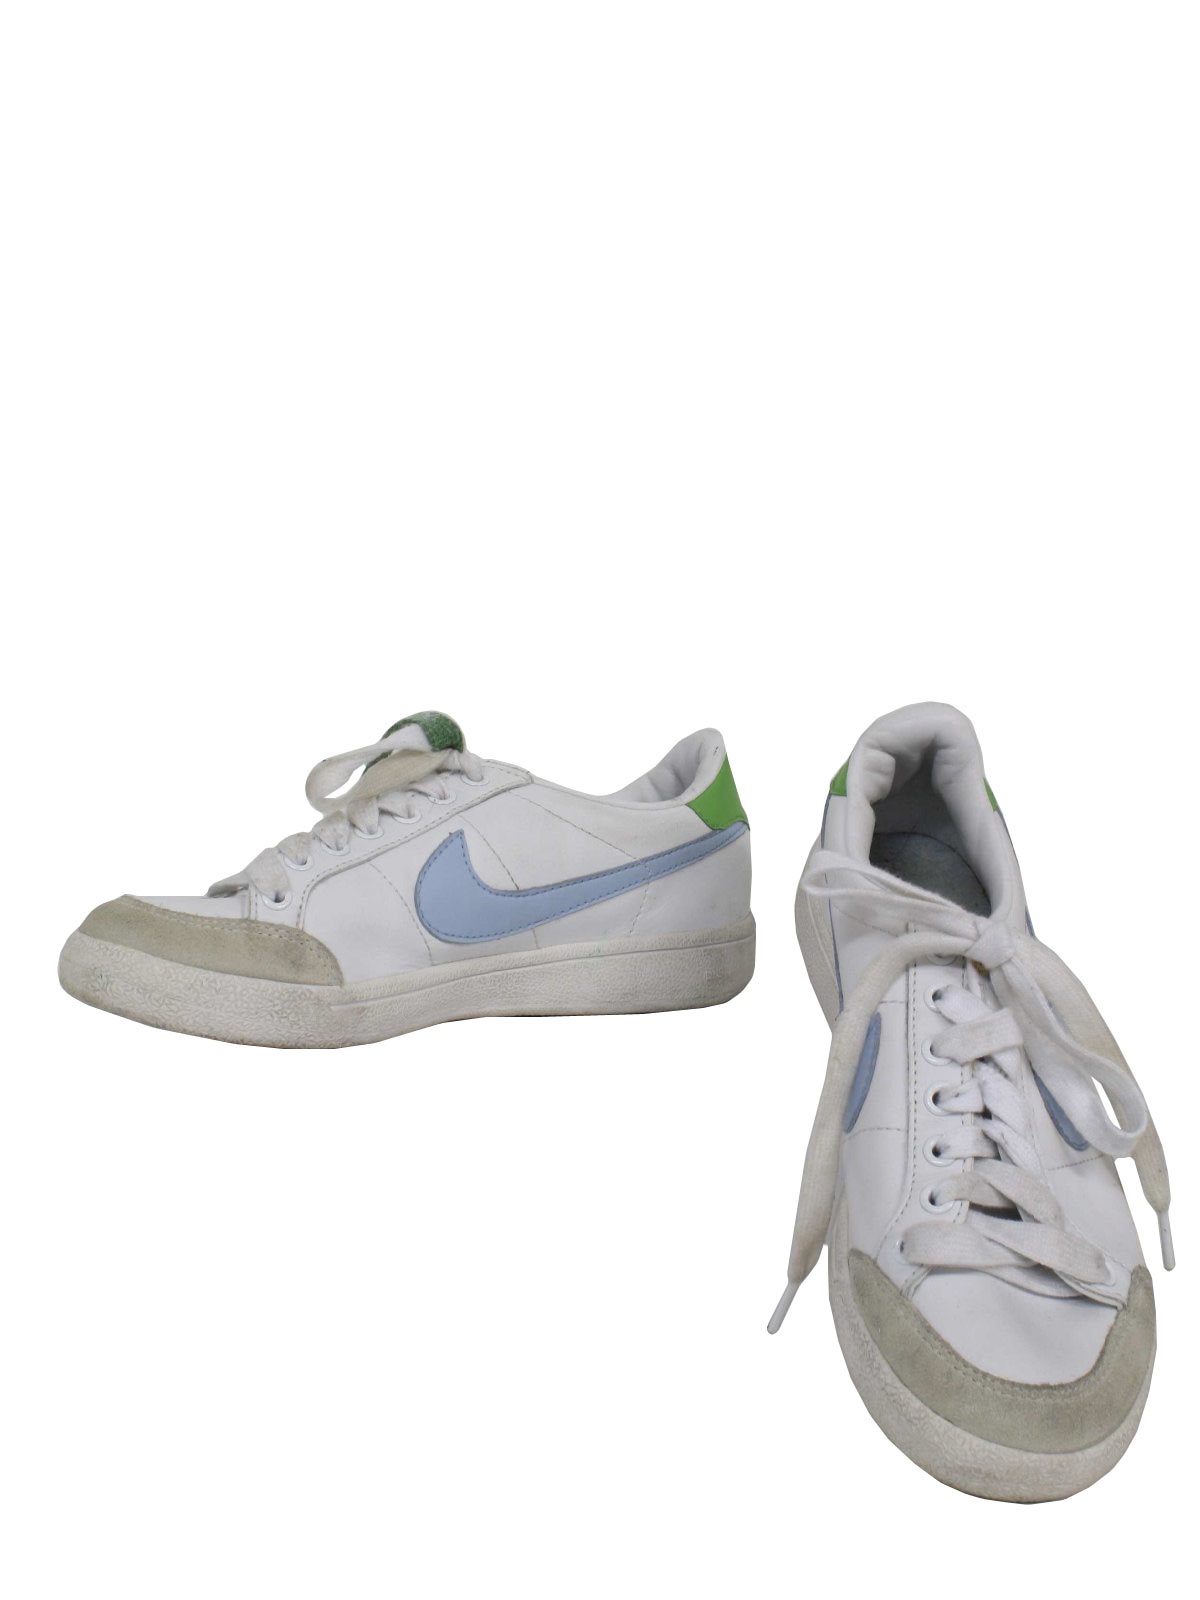 1990 s Vintage Nike Shoes  90s -Nike- Womens white with light blue ... 0e79c67e8